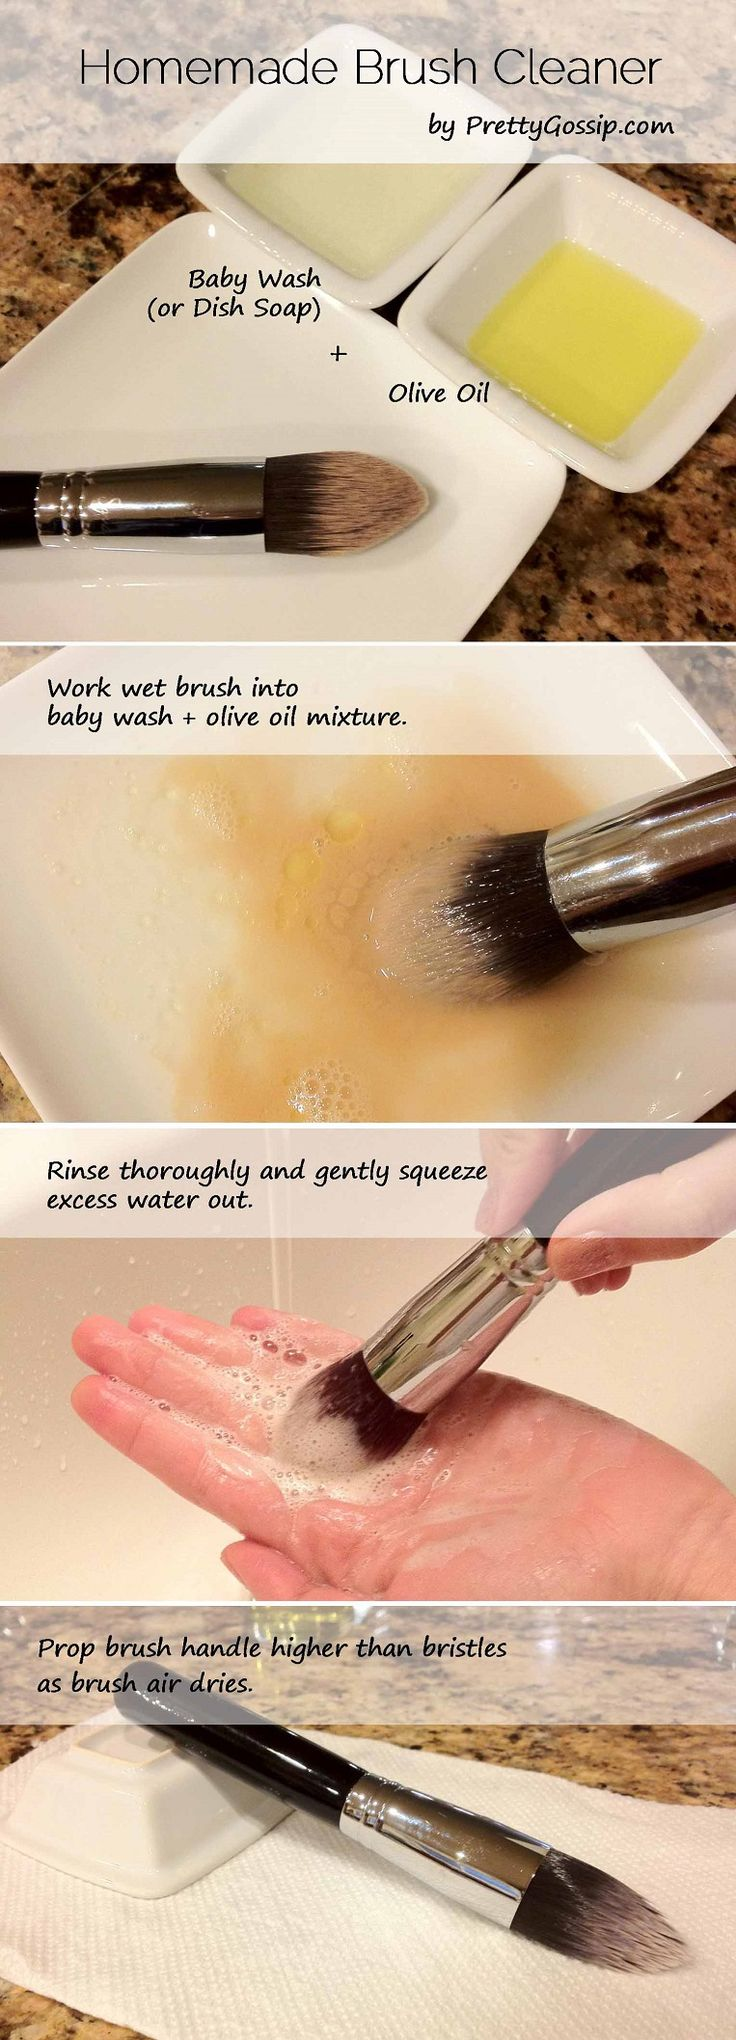 15 Best Tips: How to Get Rid of Acne - GleamItUp